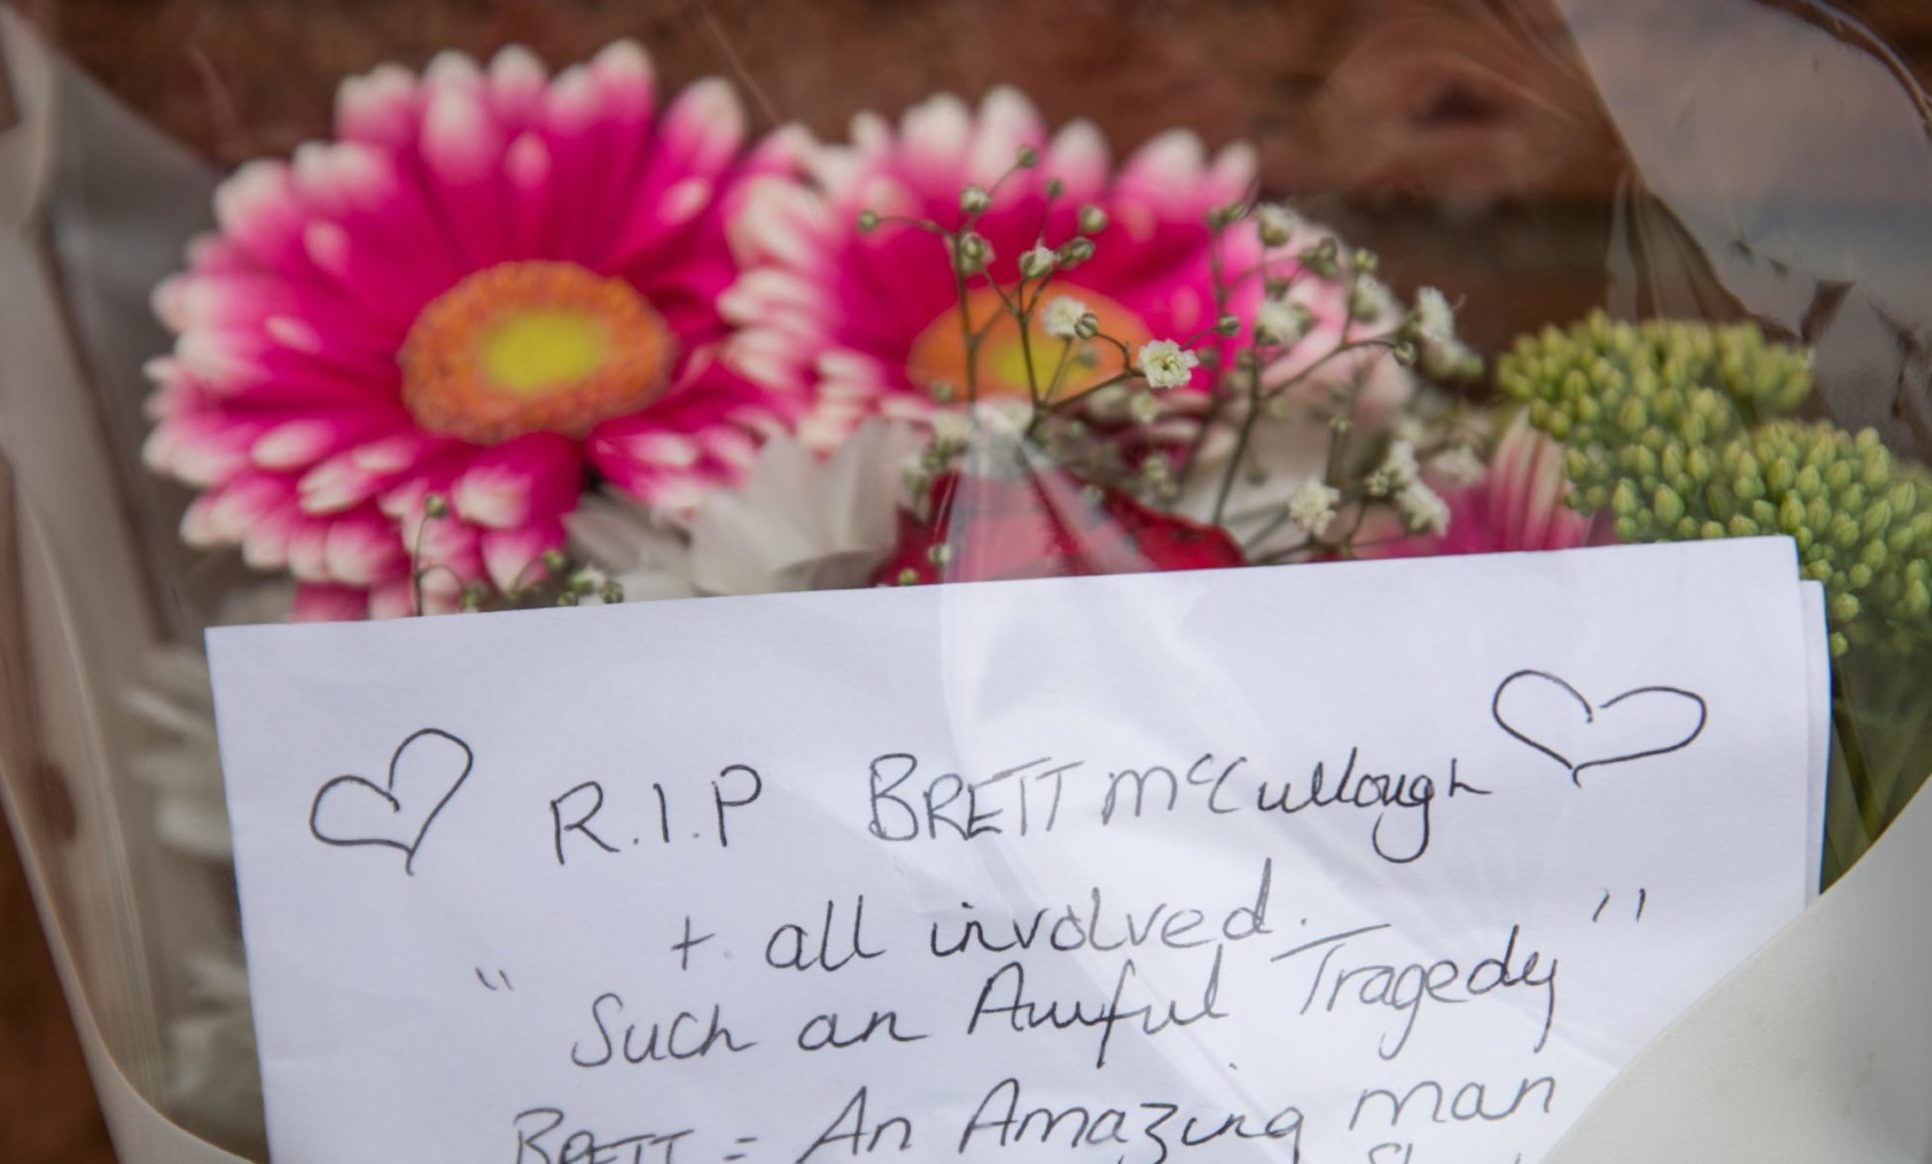 Floral tributes left at Stonehaven Station